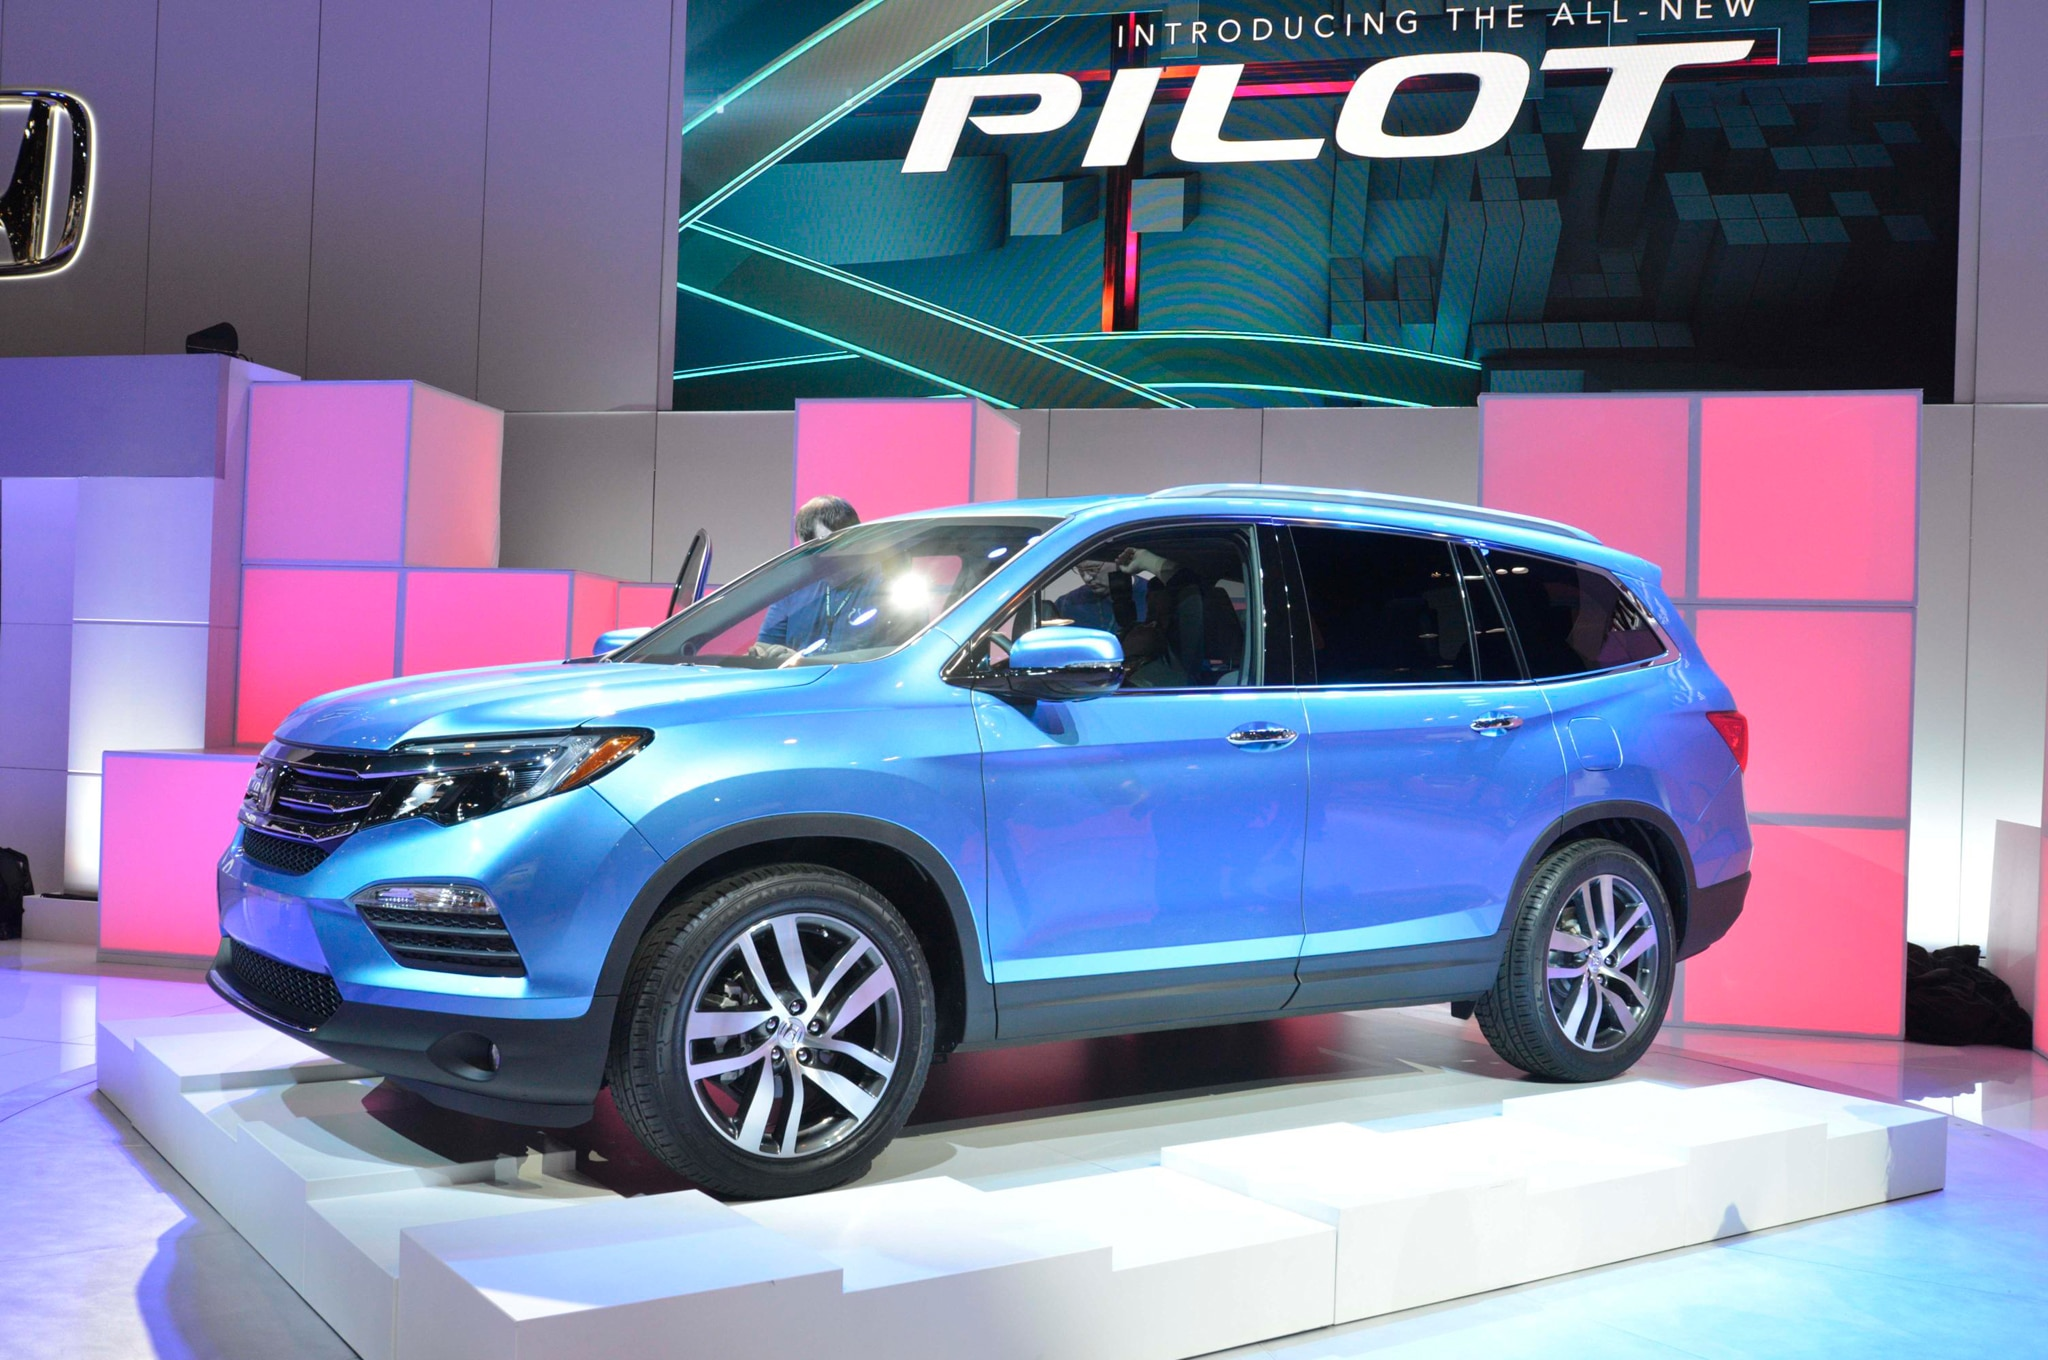 2016 honda pilot powertrains trim levels detailed. Black Bedroom Furniture Sets. Home Design Ideas